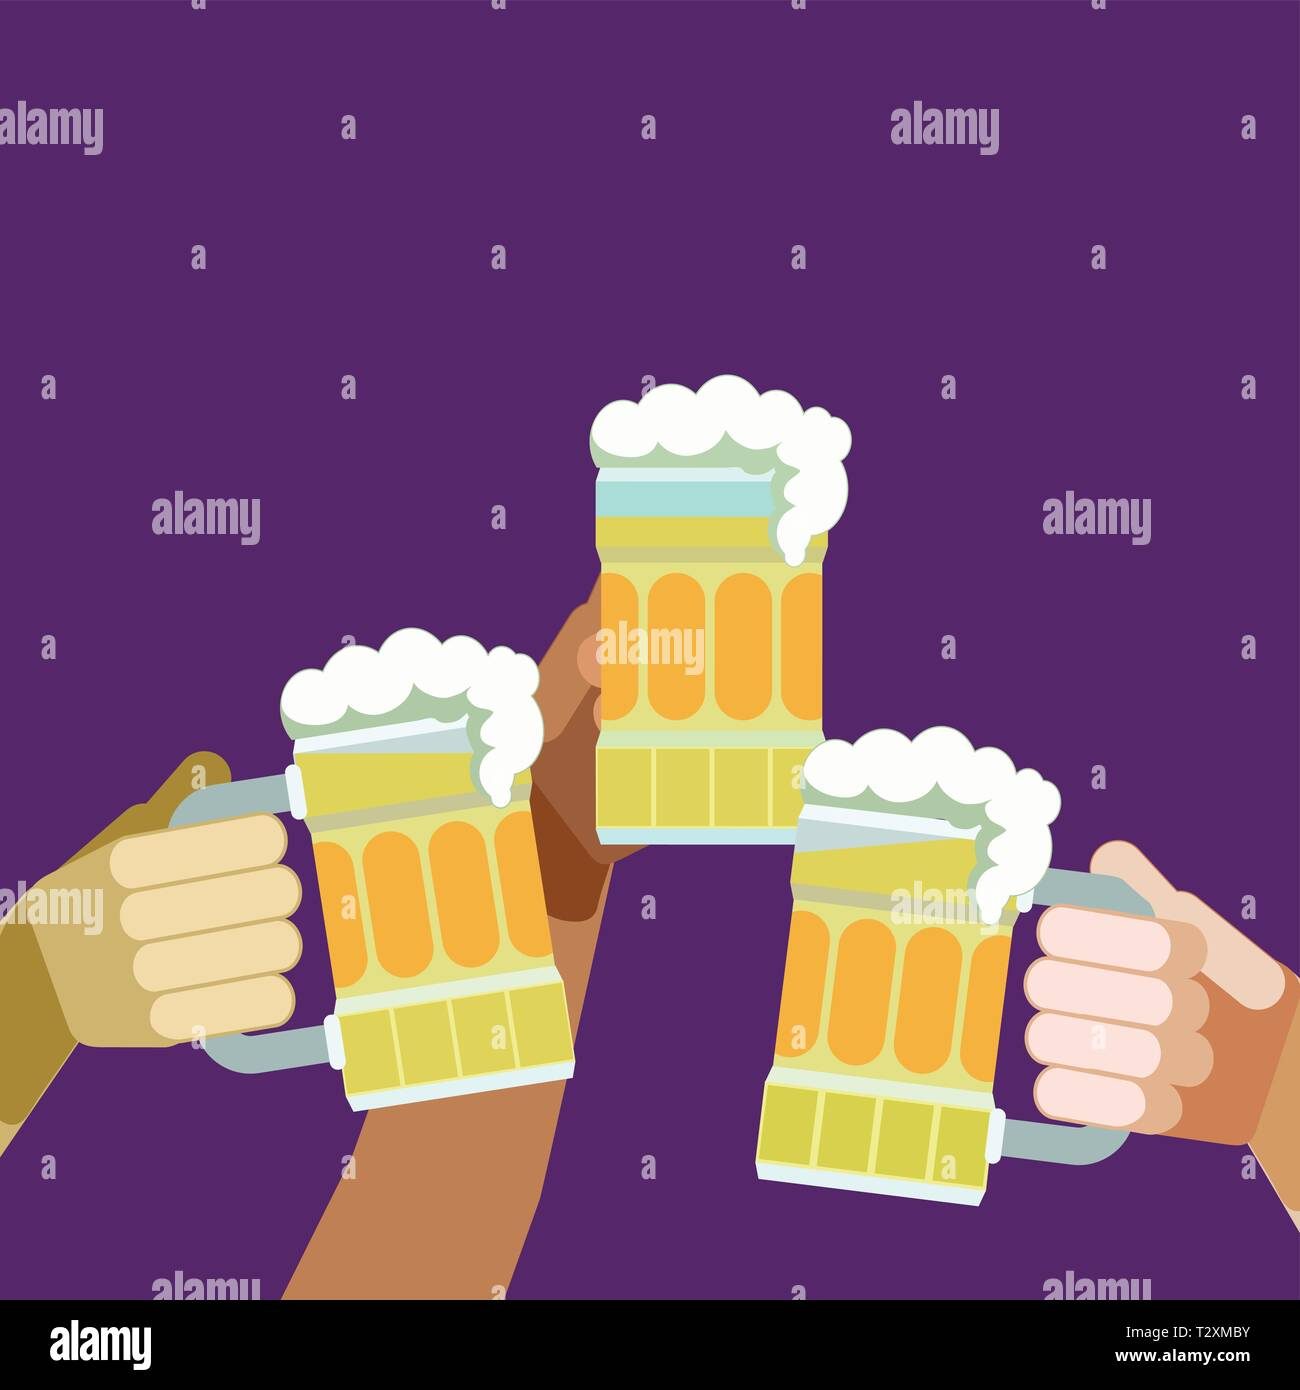 Beer mug toast. 3 Arms and 3 beer mugs, glasses raised in a toast - Stock Vector